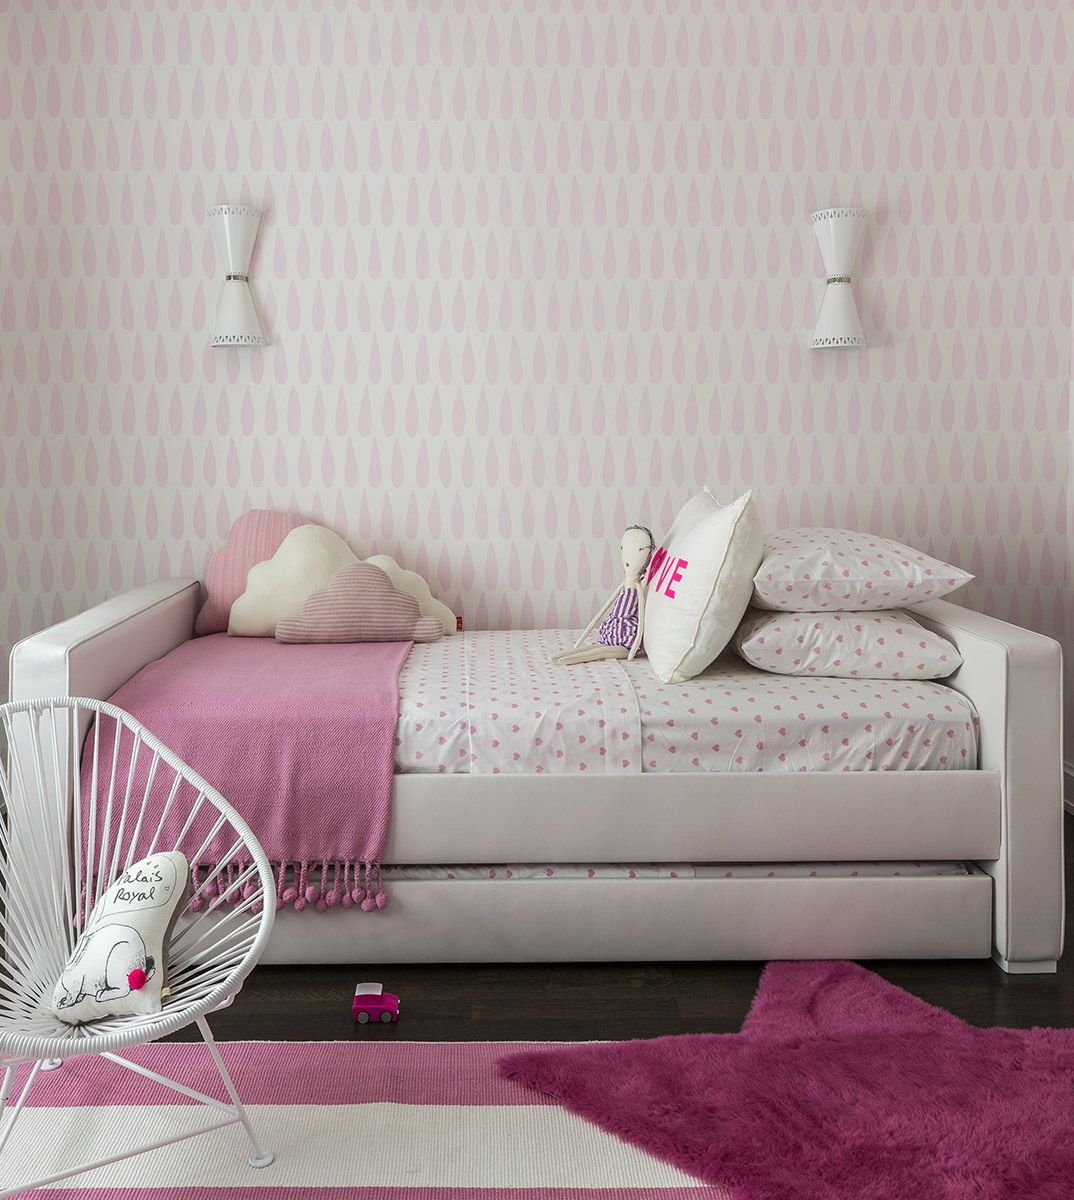 Best Upholstered Dorma Twin Bed With Trundle In A Pink Girls 640 x 480